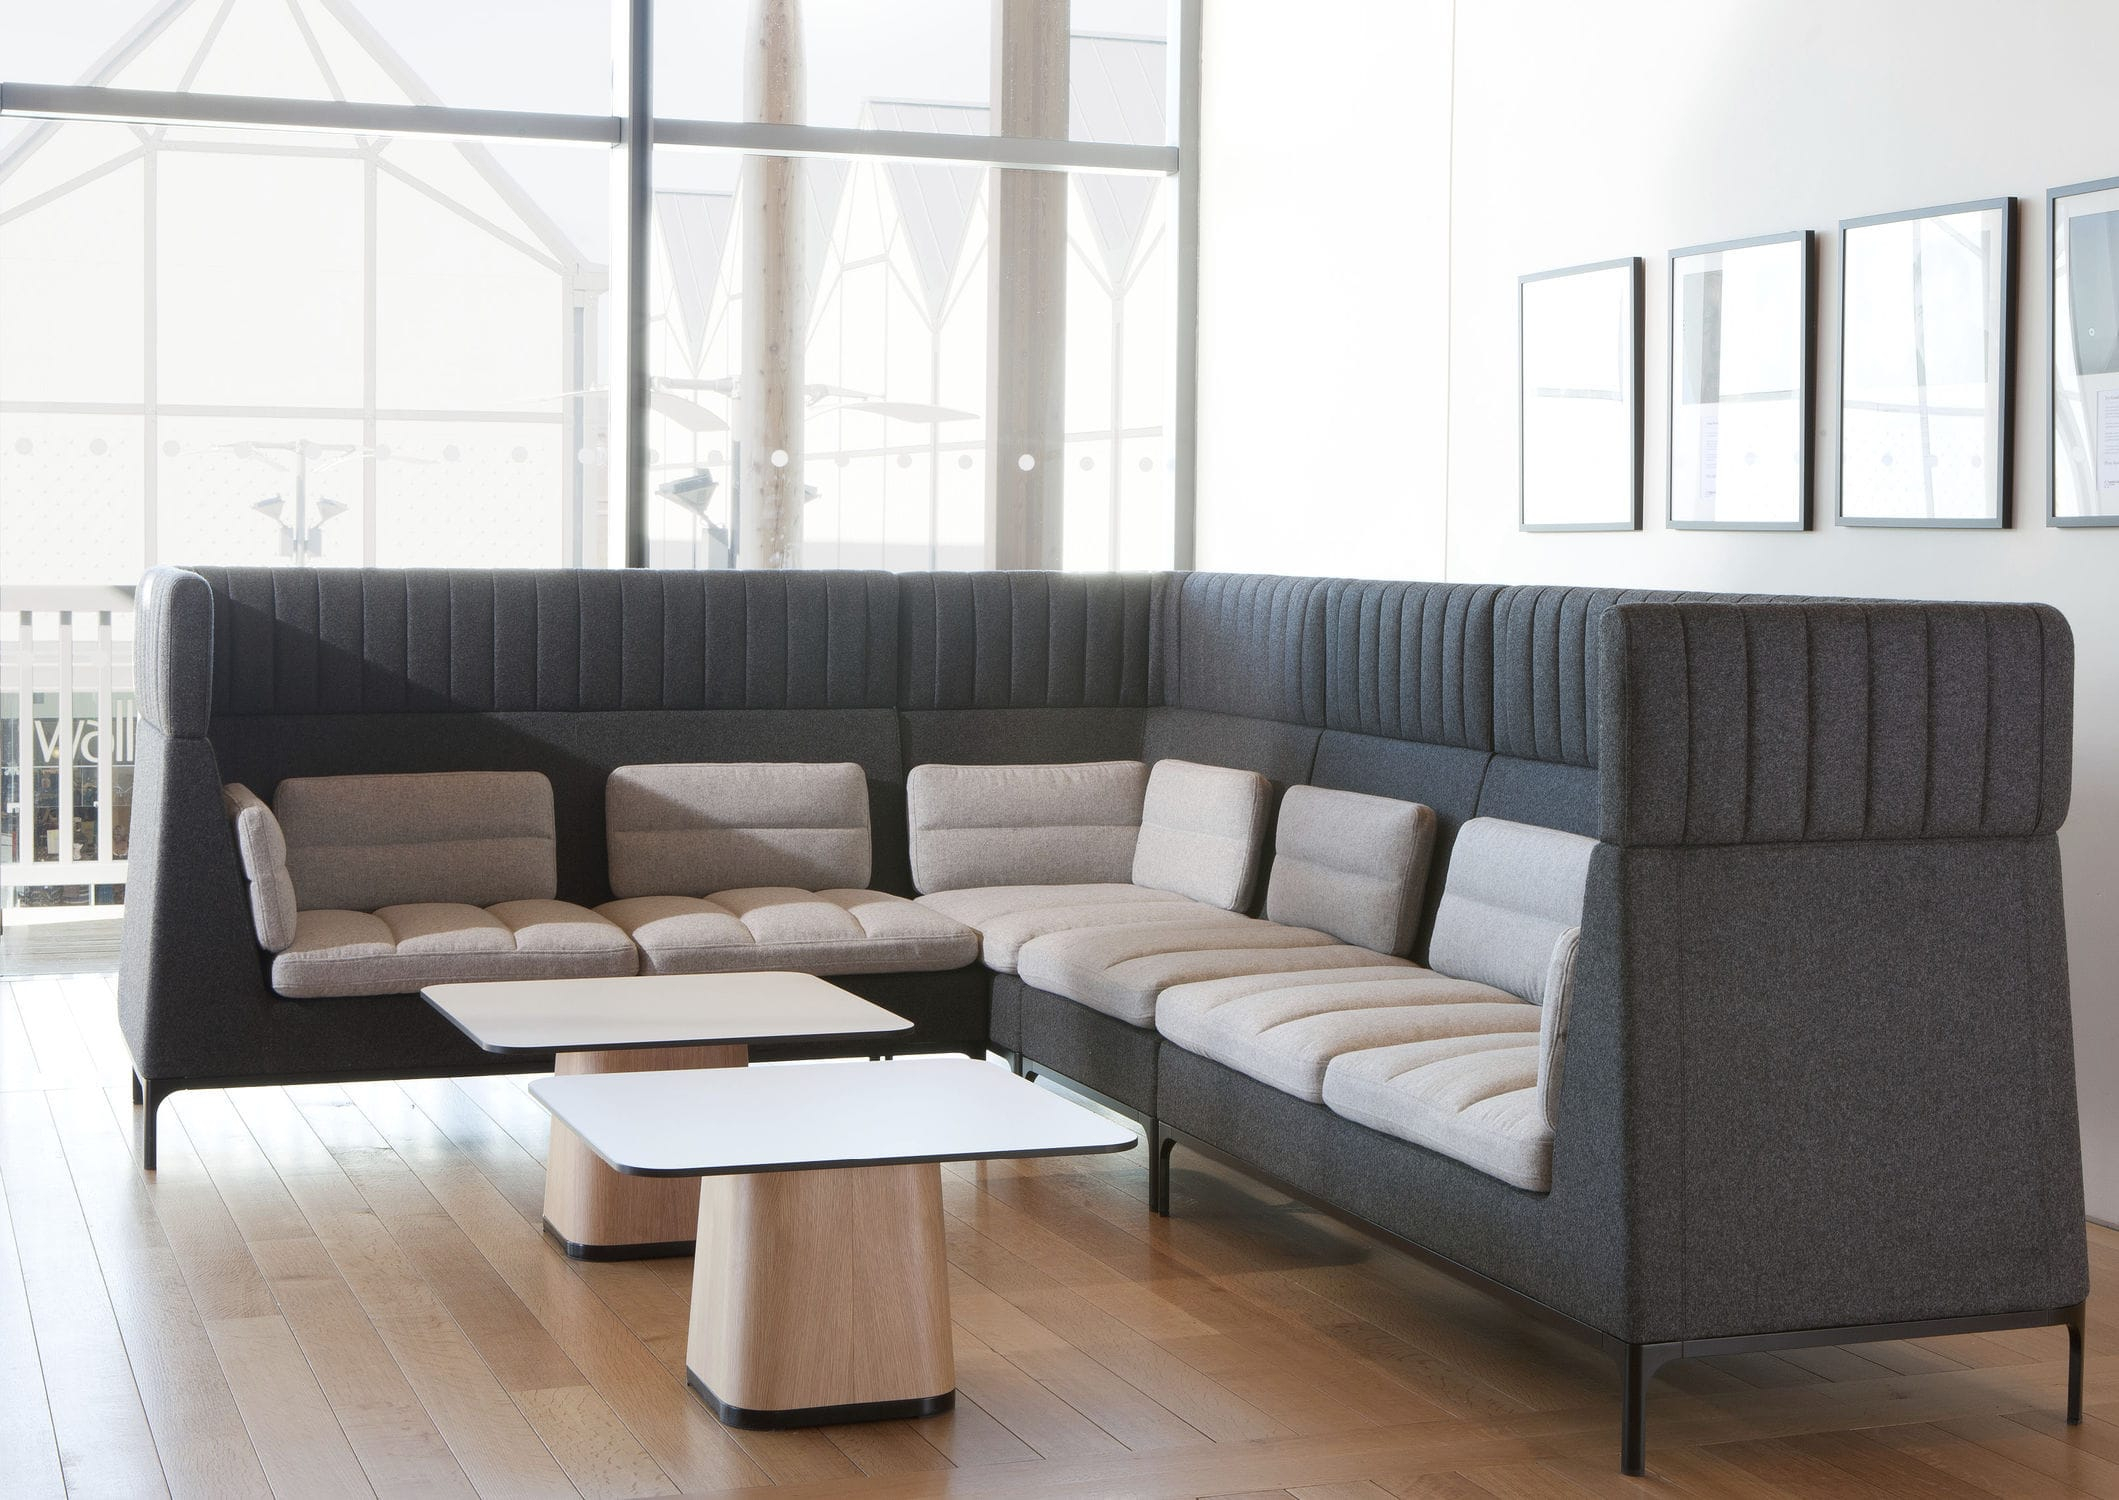 Modular Sofa / Contemporary / Aluminum / Fabric – Havenmark Pertaining To Haven Sofa Chairs (View 7 of 25)